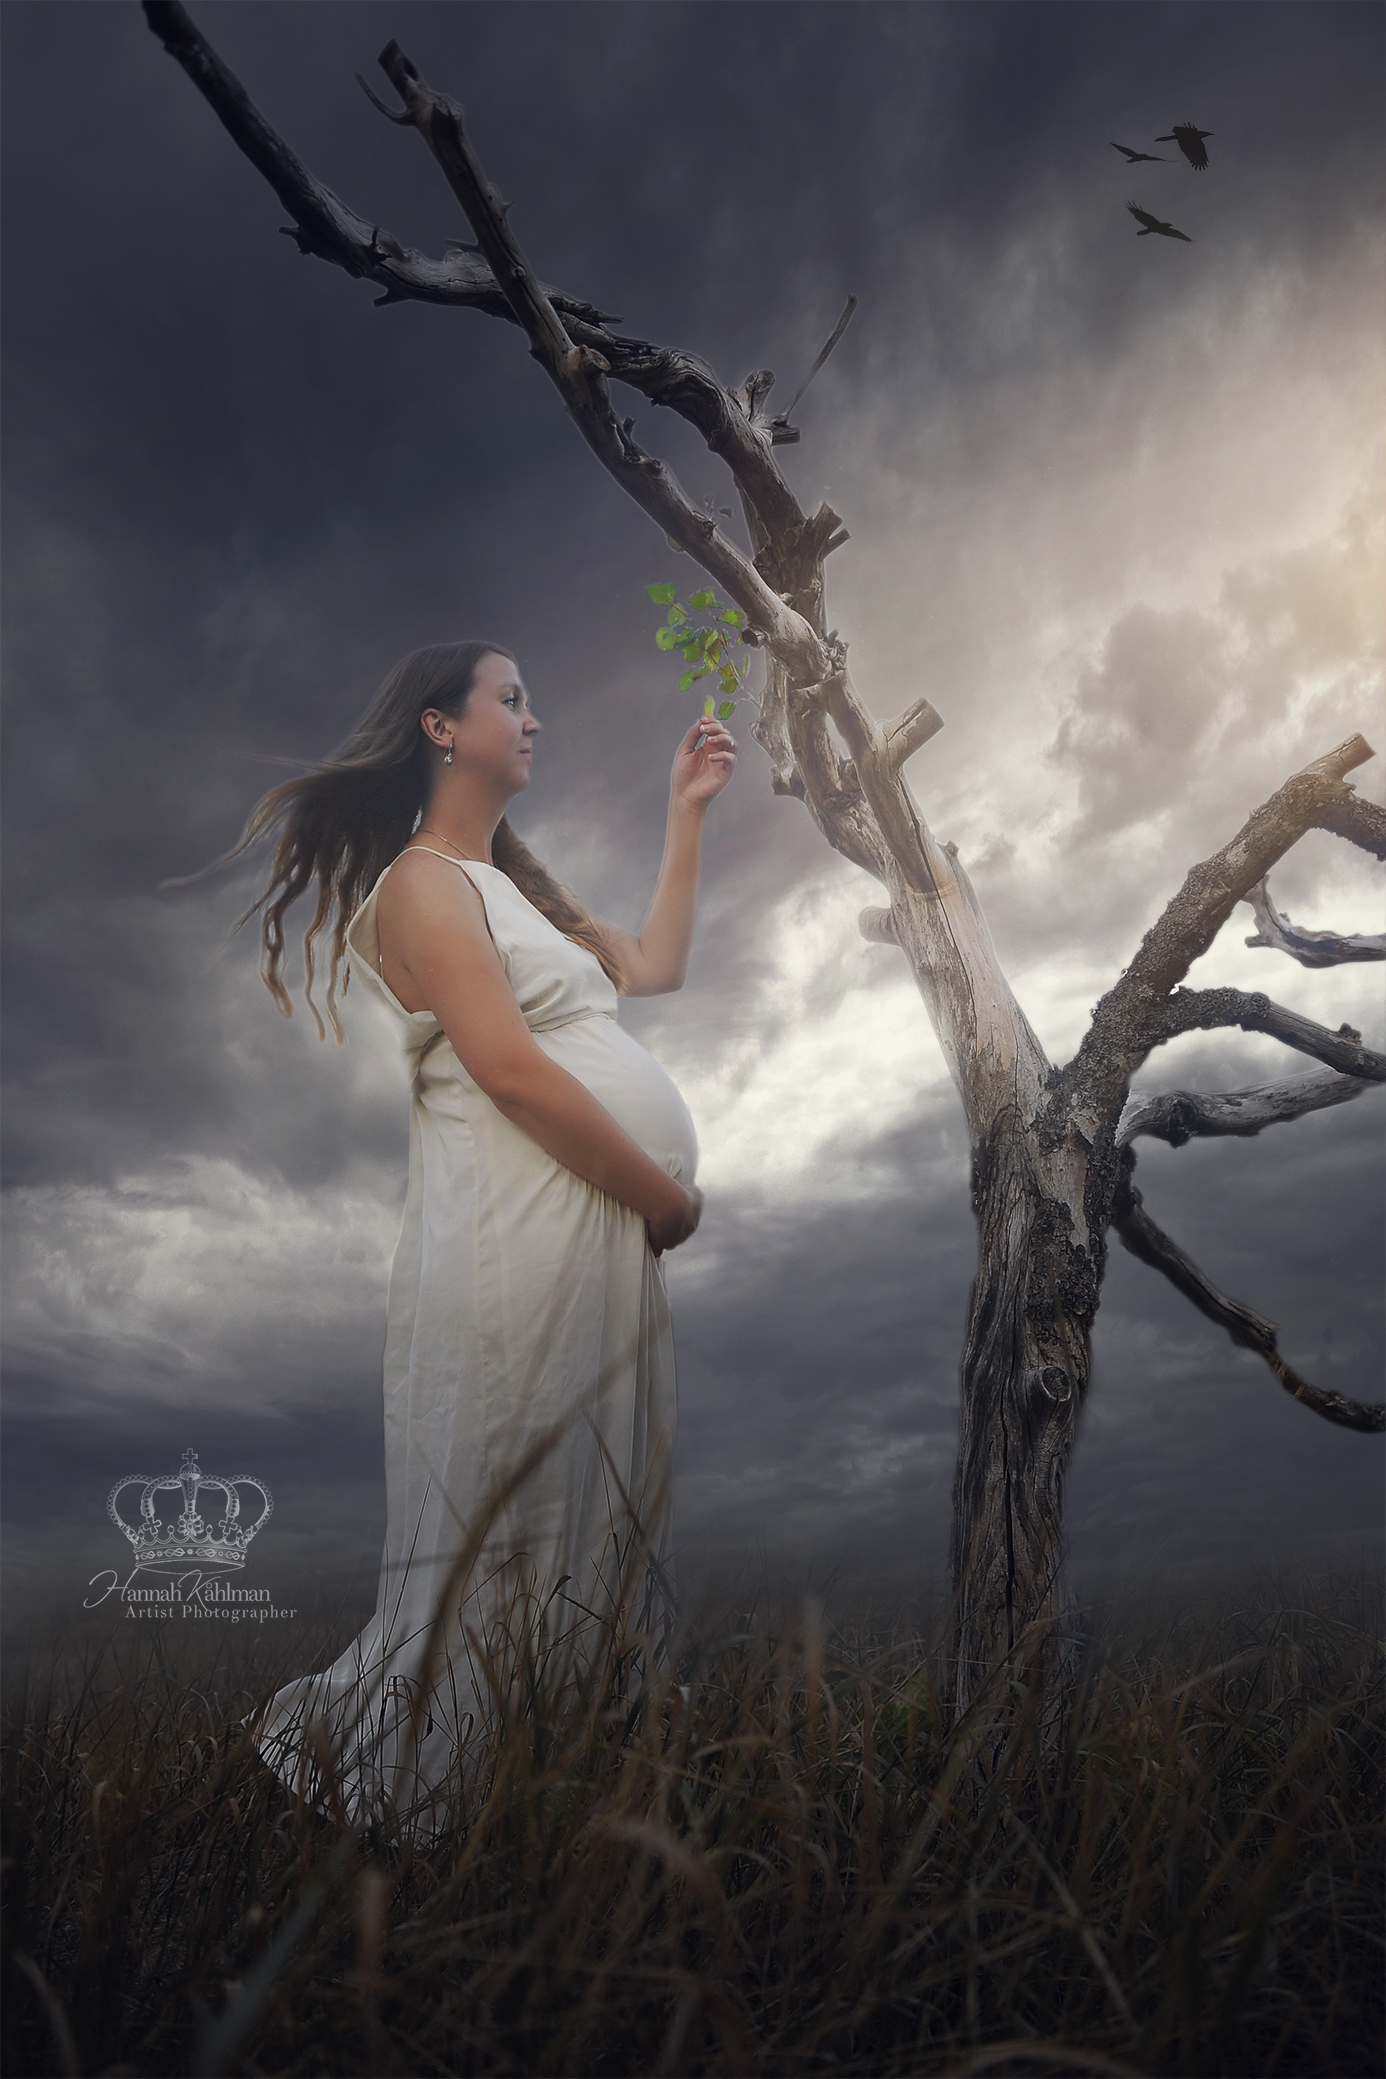 Creative_outdoor_fantasy_composite_of_ma